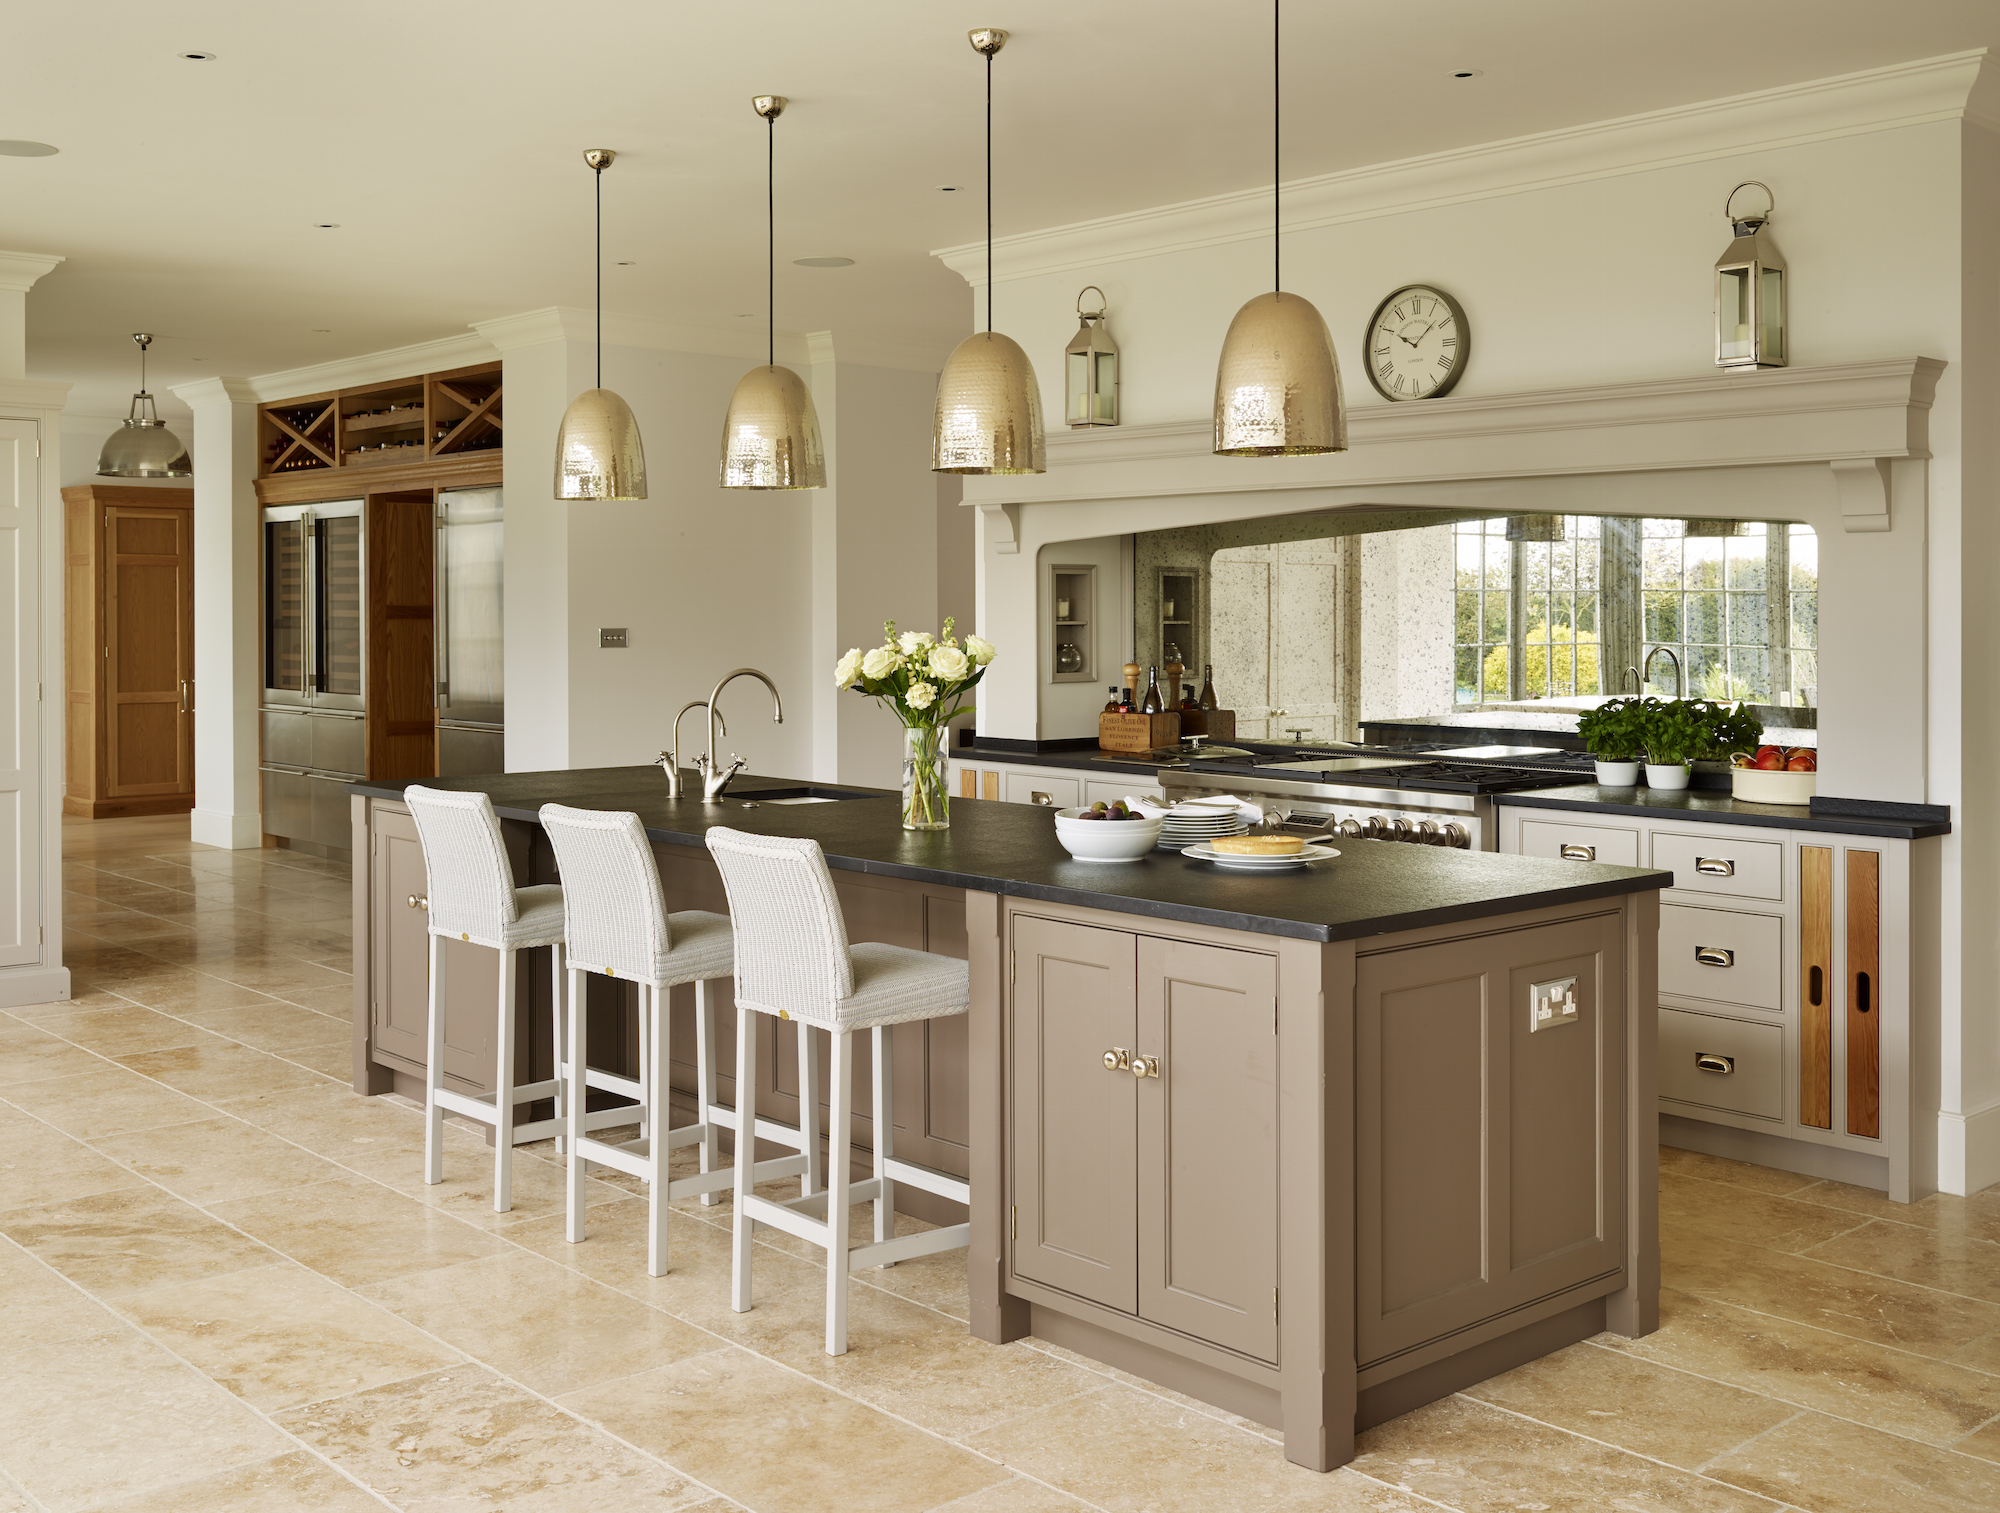 kitchen design ideas kitchen design kitchen design ideas